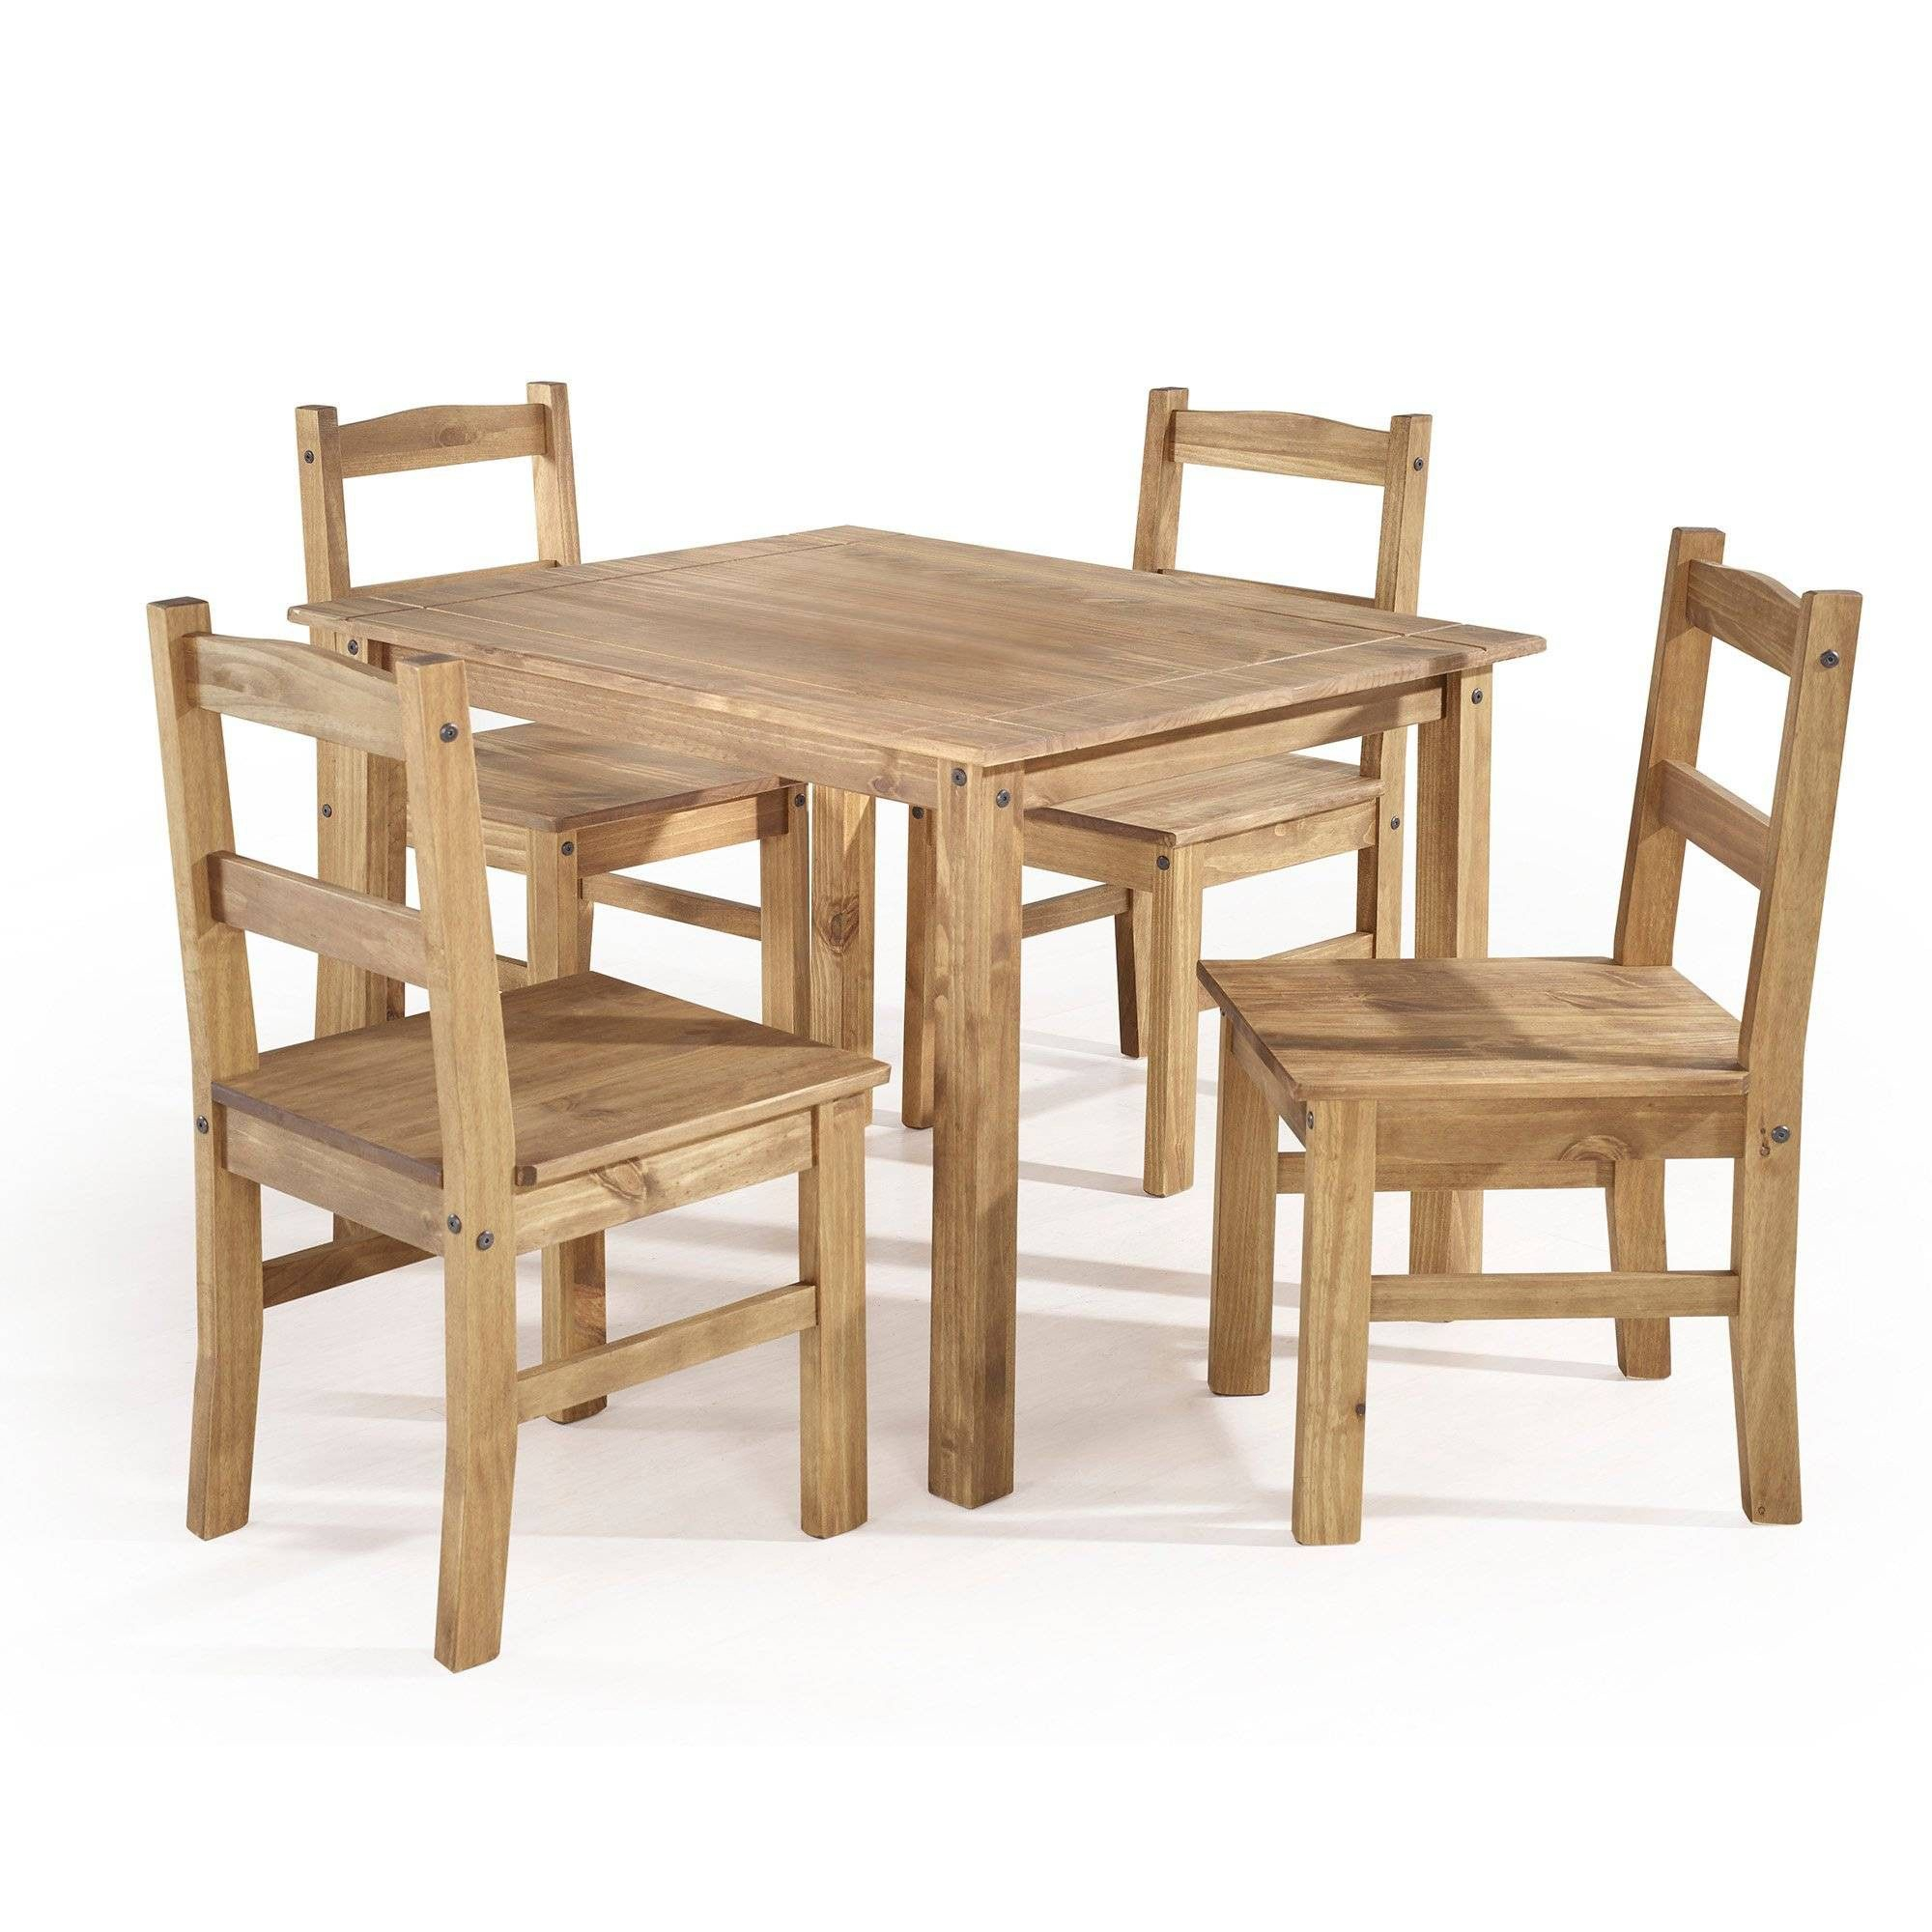 5Pc York Solid Wood Dining Set Natural – Manhattan Comfort In 2019 Inside Best And Newest Wiggs 5 Piece Dining Sets (View 9 of 20)